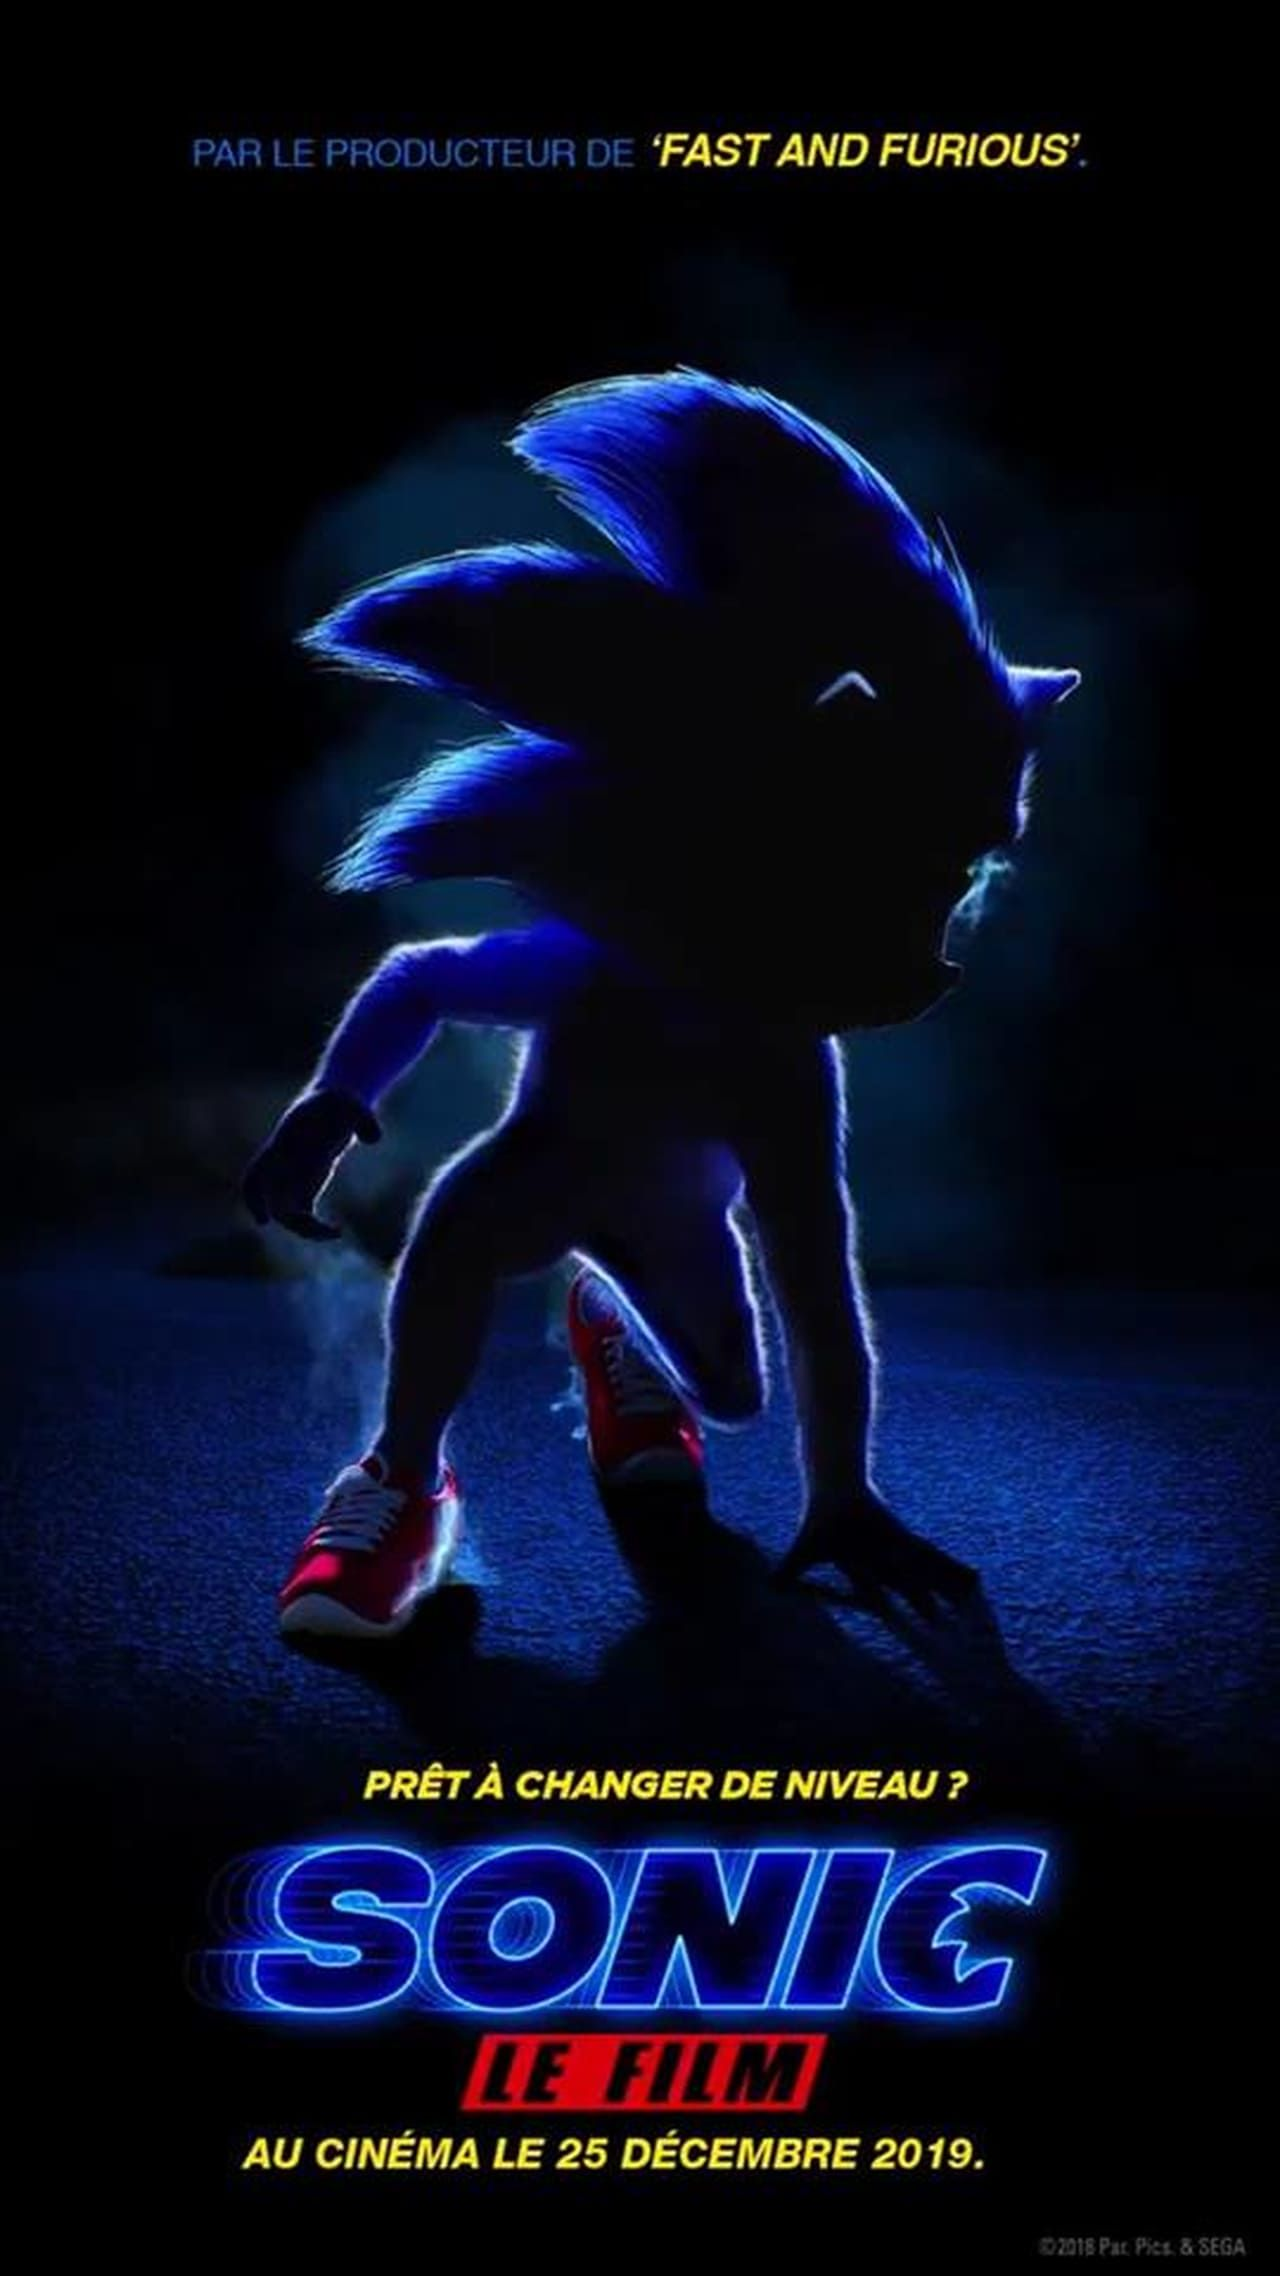 Sonic The Hedgehog full movie Download 2019 Online 720p 1080p Full Movies Free Movies Online Movies Online